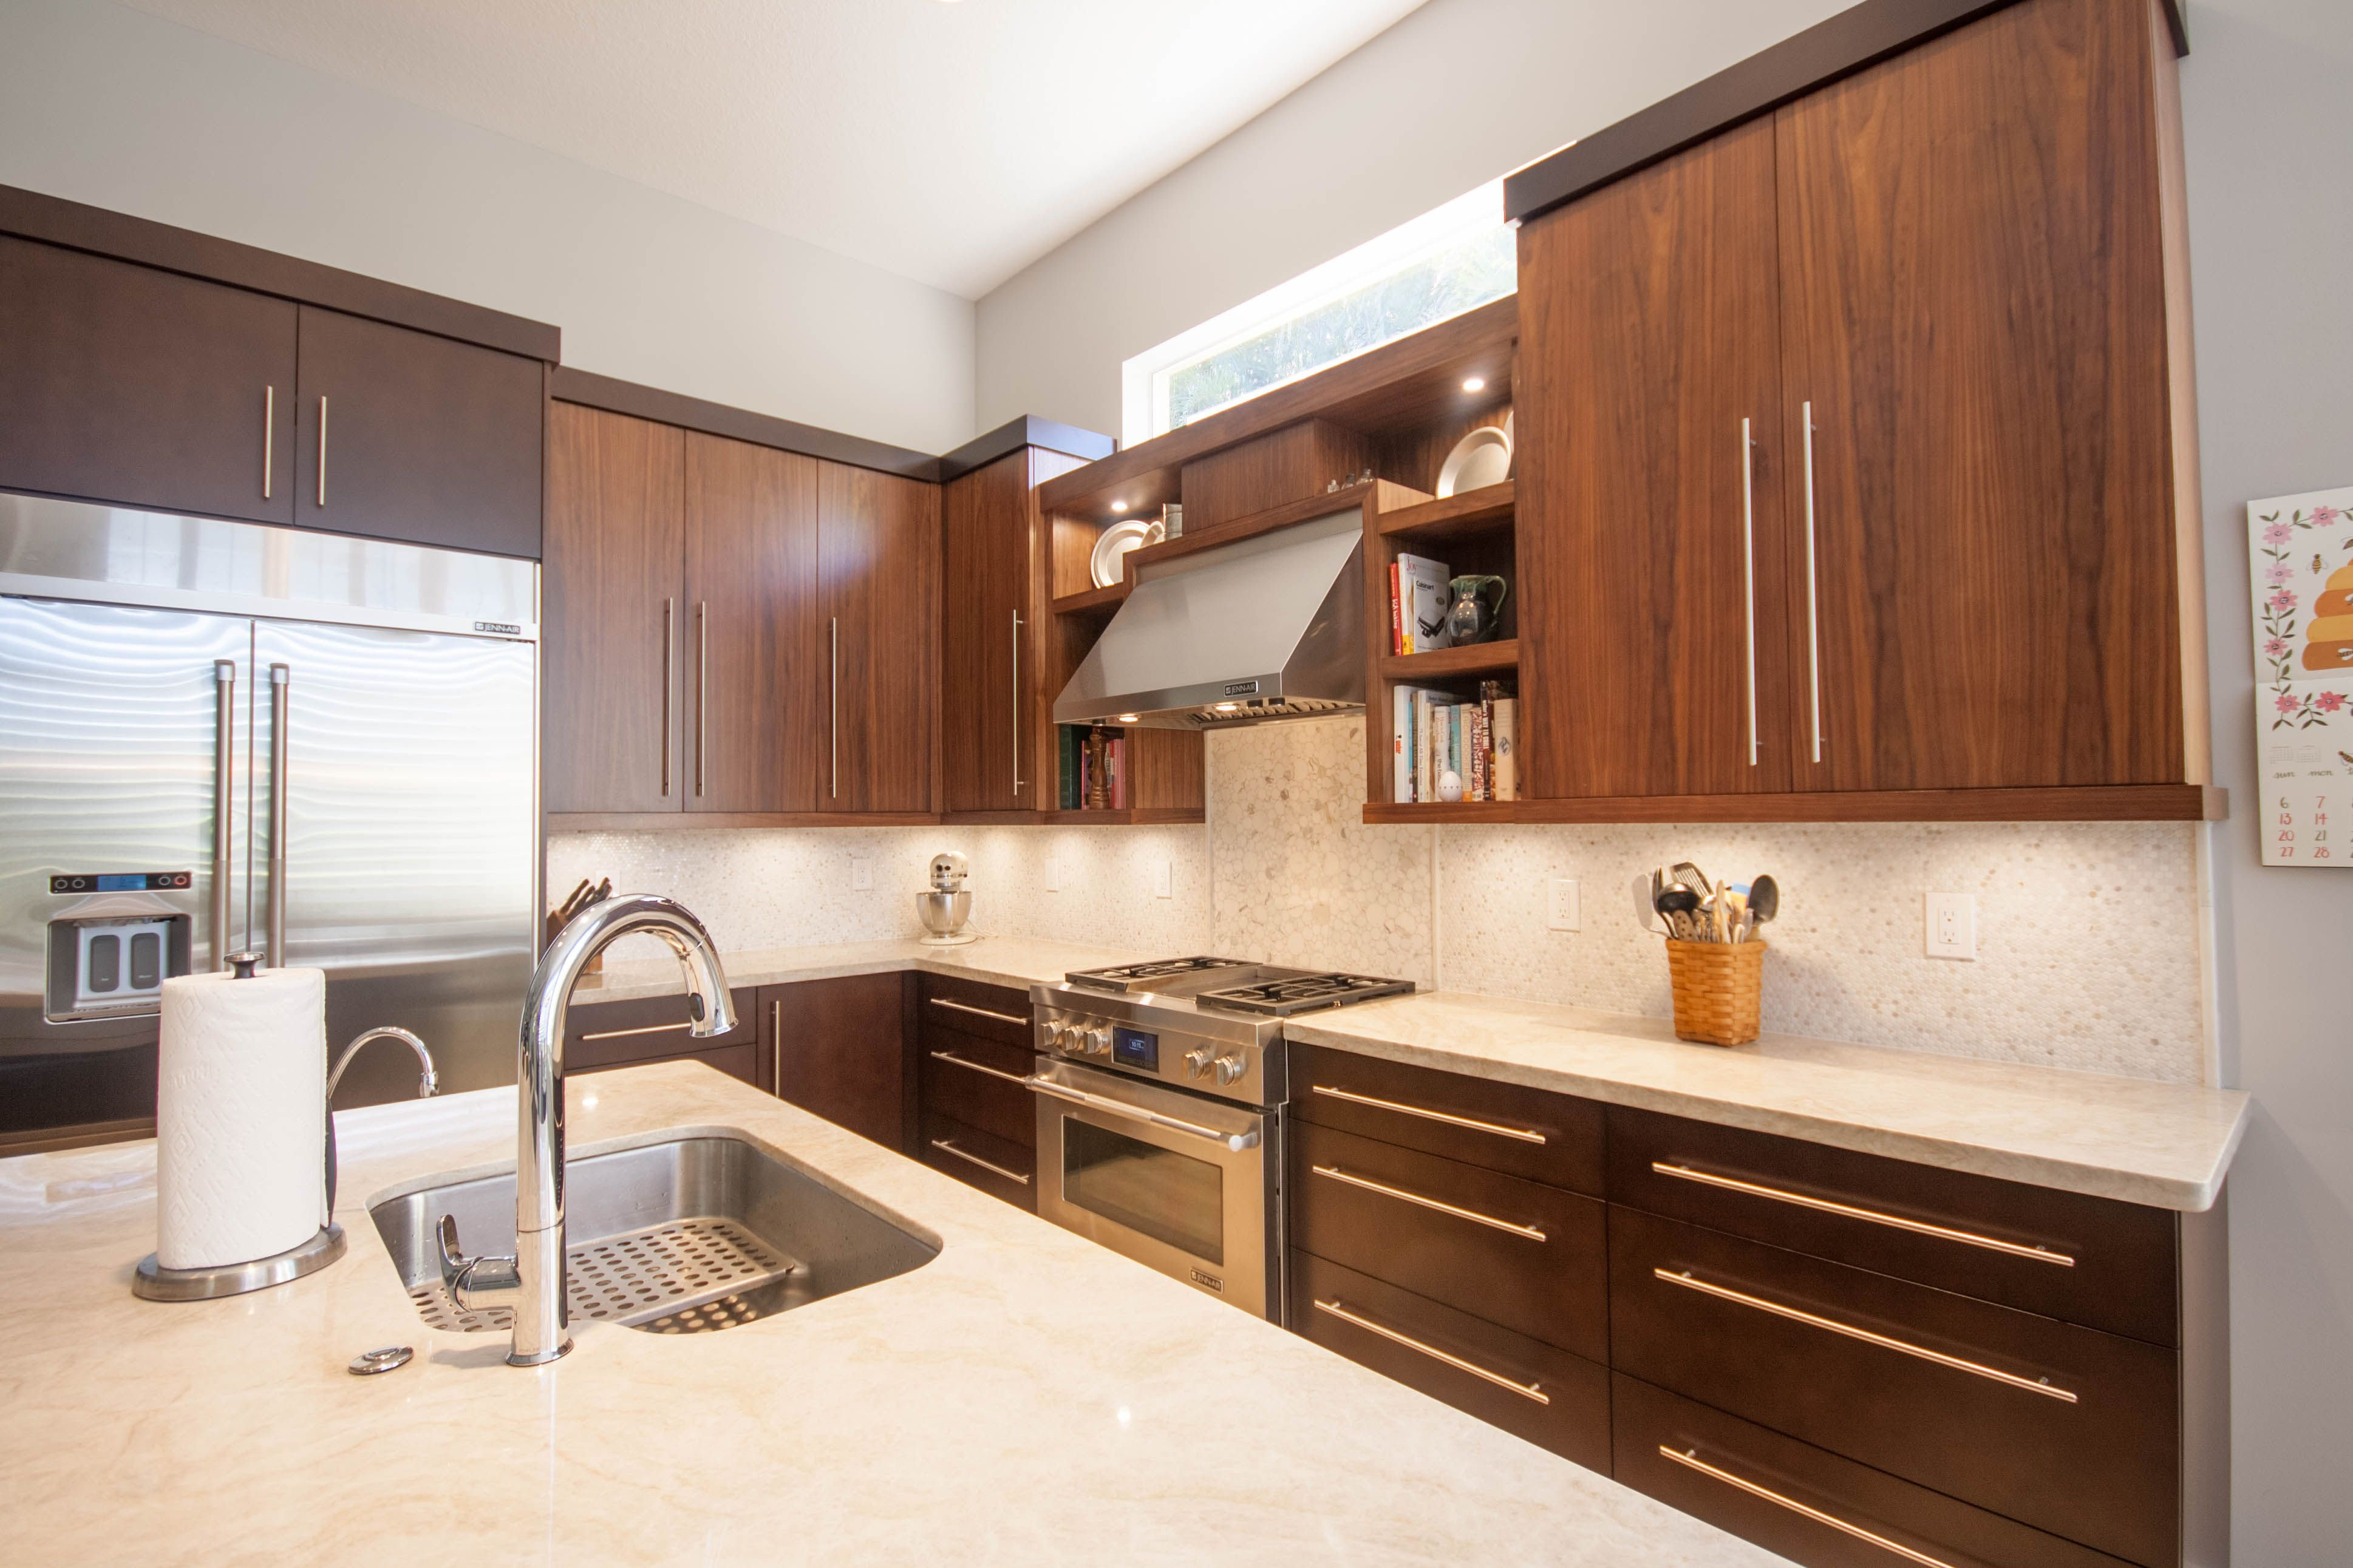 Contemporary Kitchen All Units Are Custom Designed And Manufactured To Fit Your Space C A C Custom Artisan Cabi Contemporary Kitchen Kitchen Kitchen And Bath